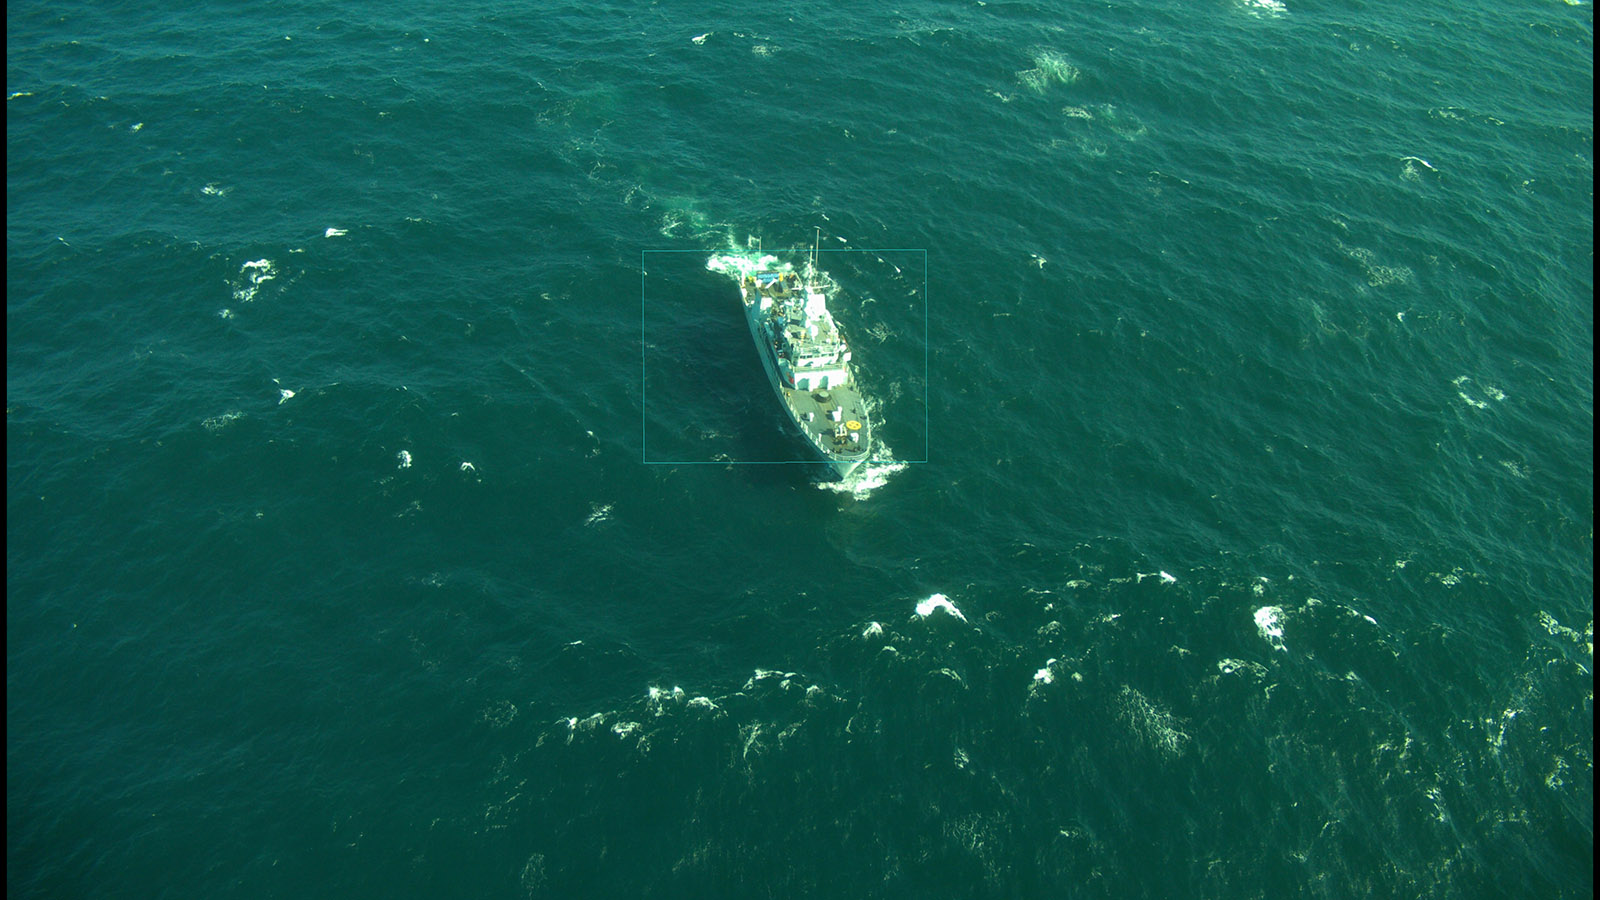 Aerial image of HMCS Edmonton taken by the PUMA during Sea Acceptance trials August 2018.